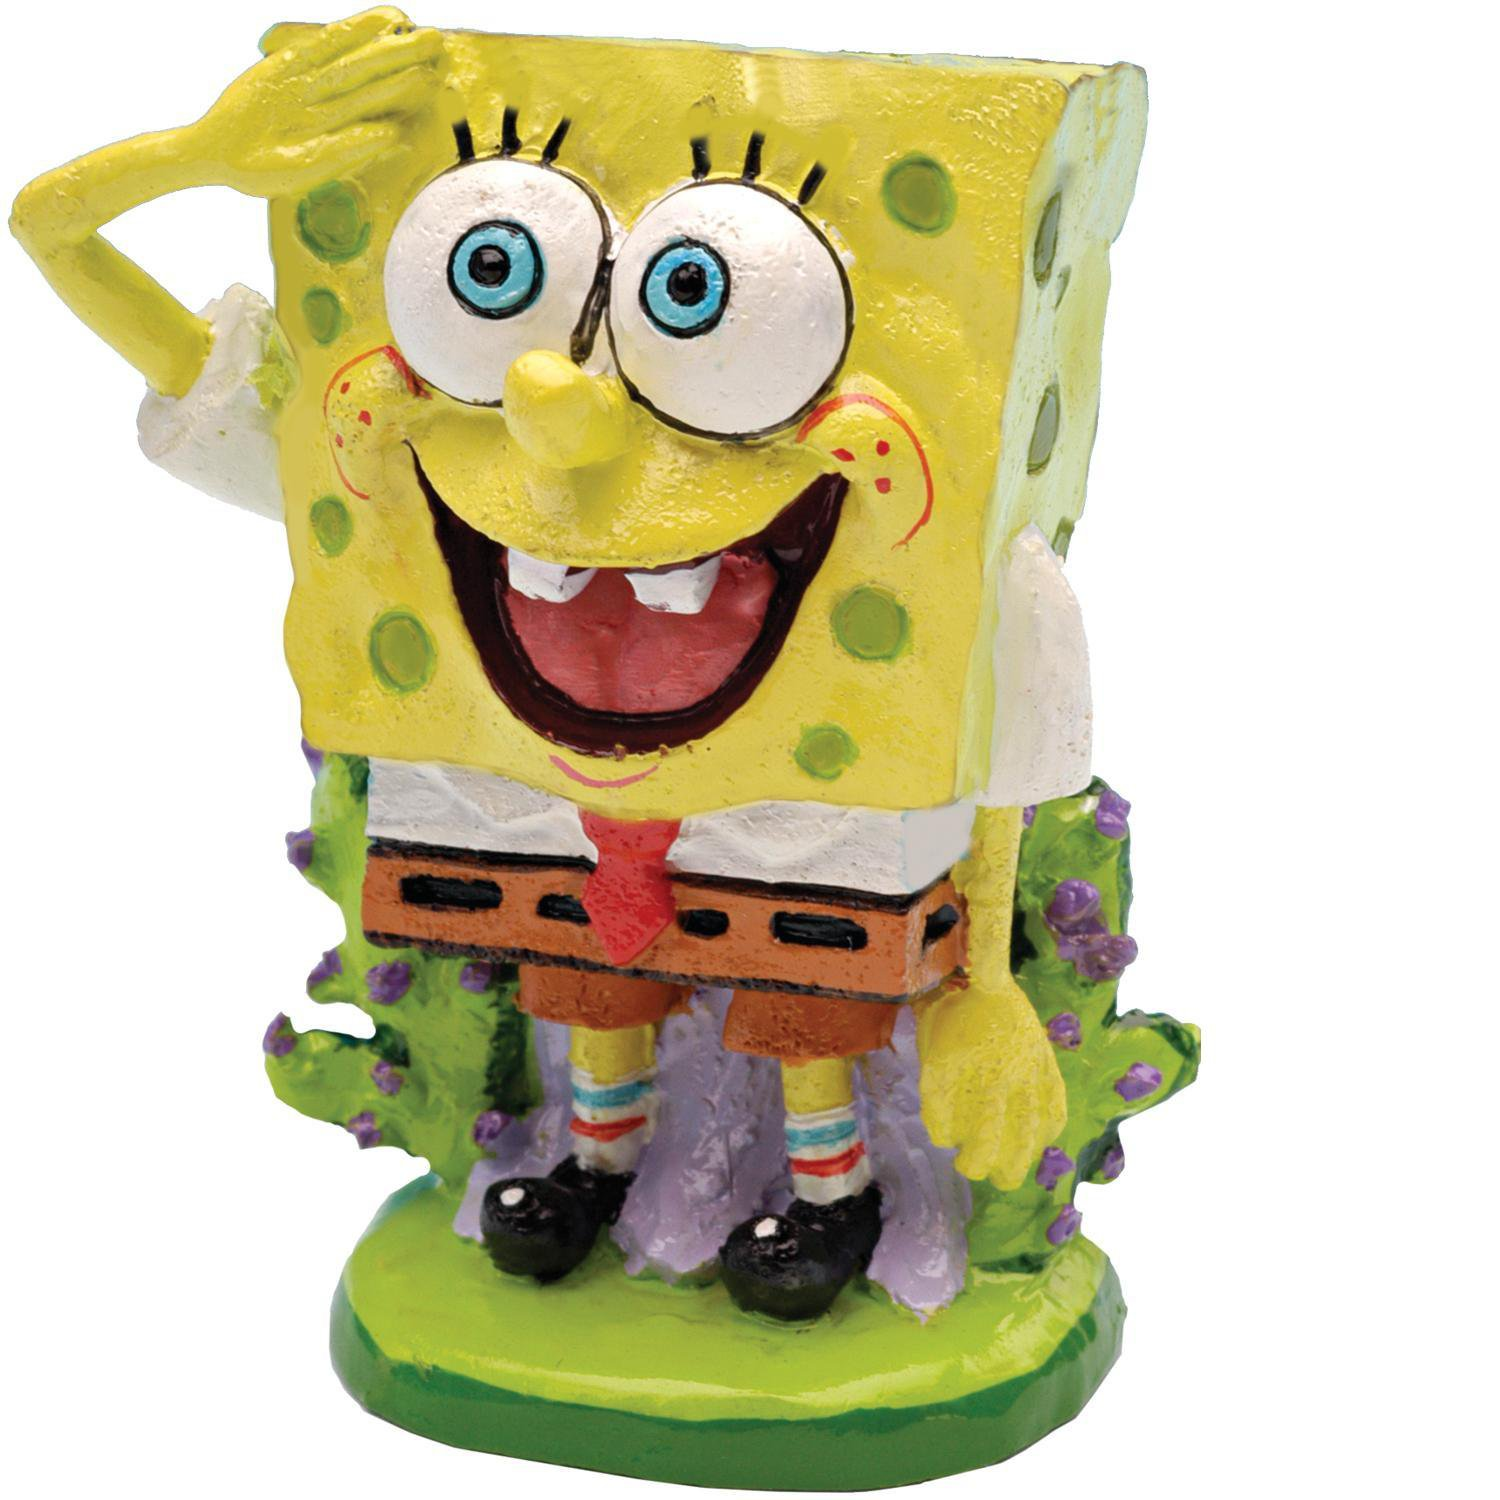 Penn plax spongebob squarepants aquatic ornament petco for Spongebob fish tank